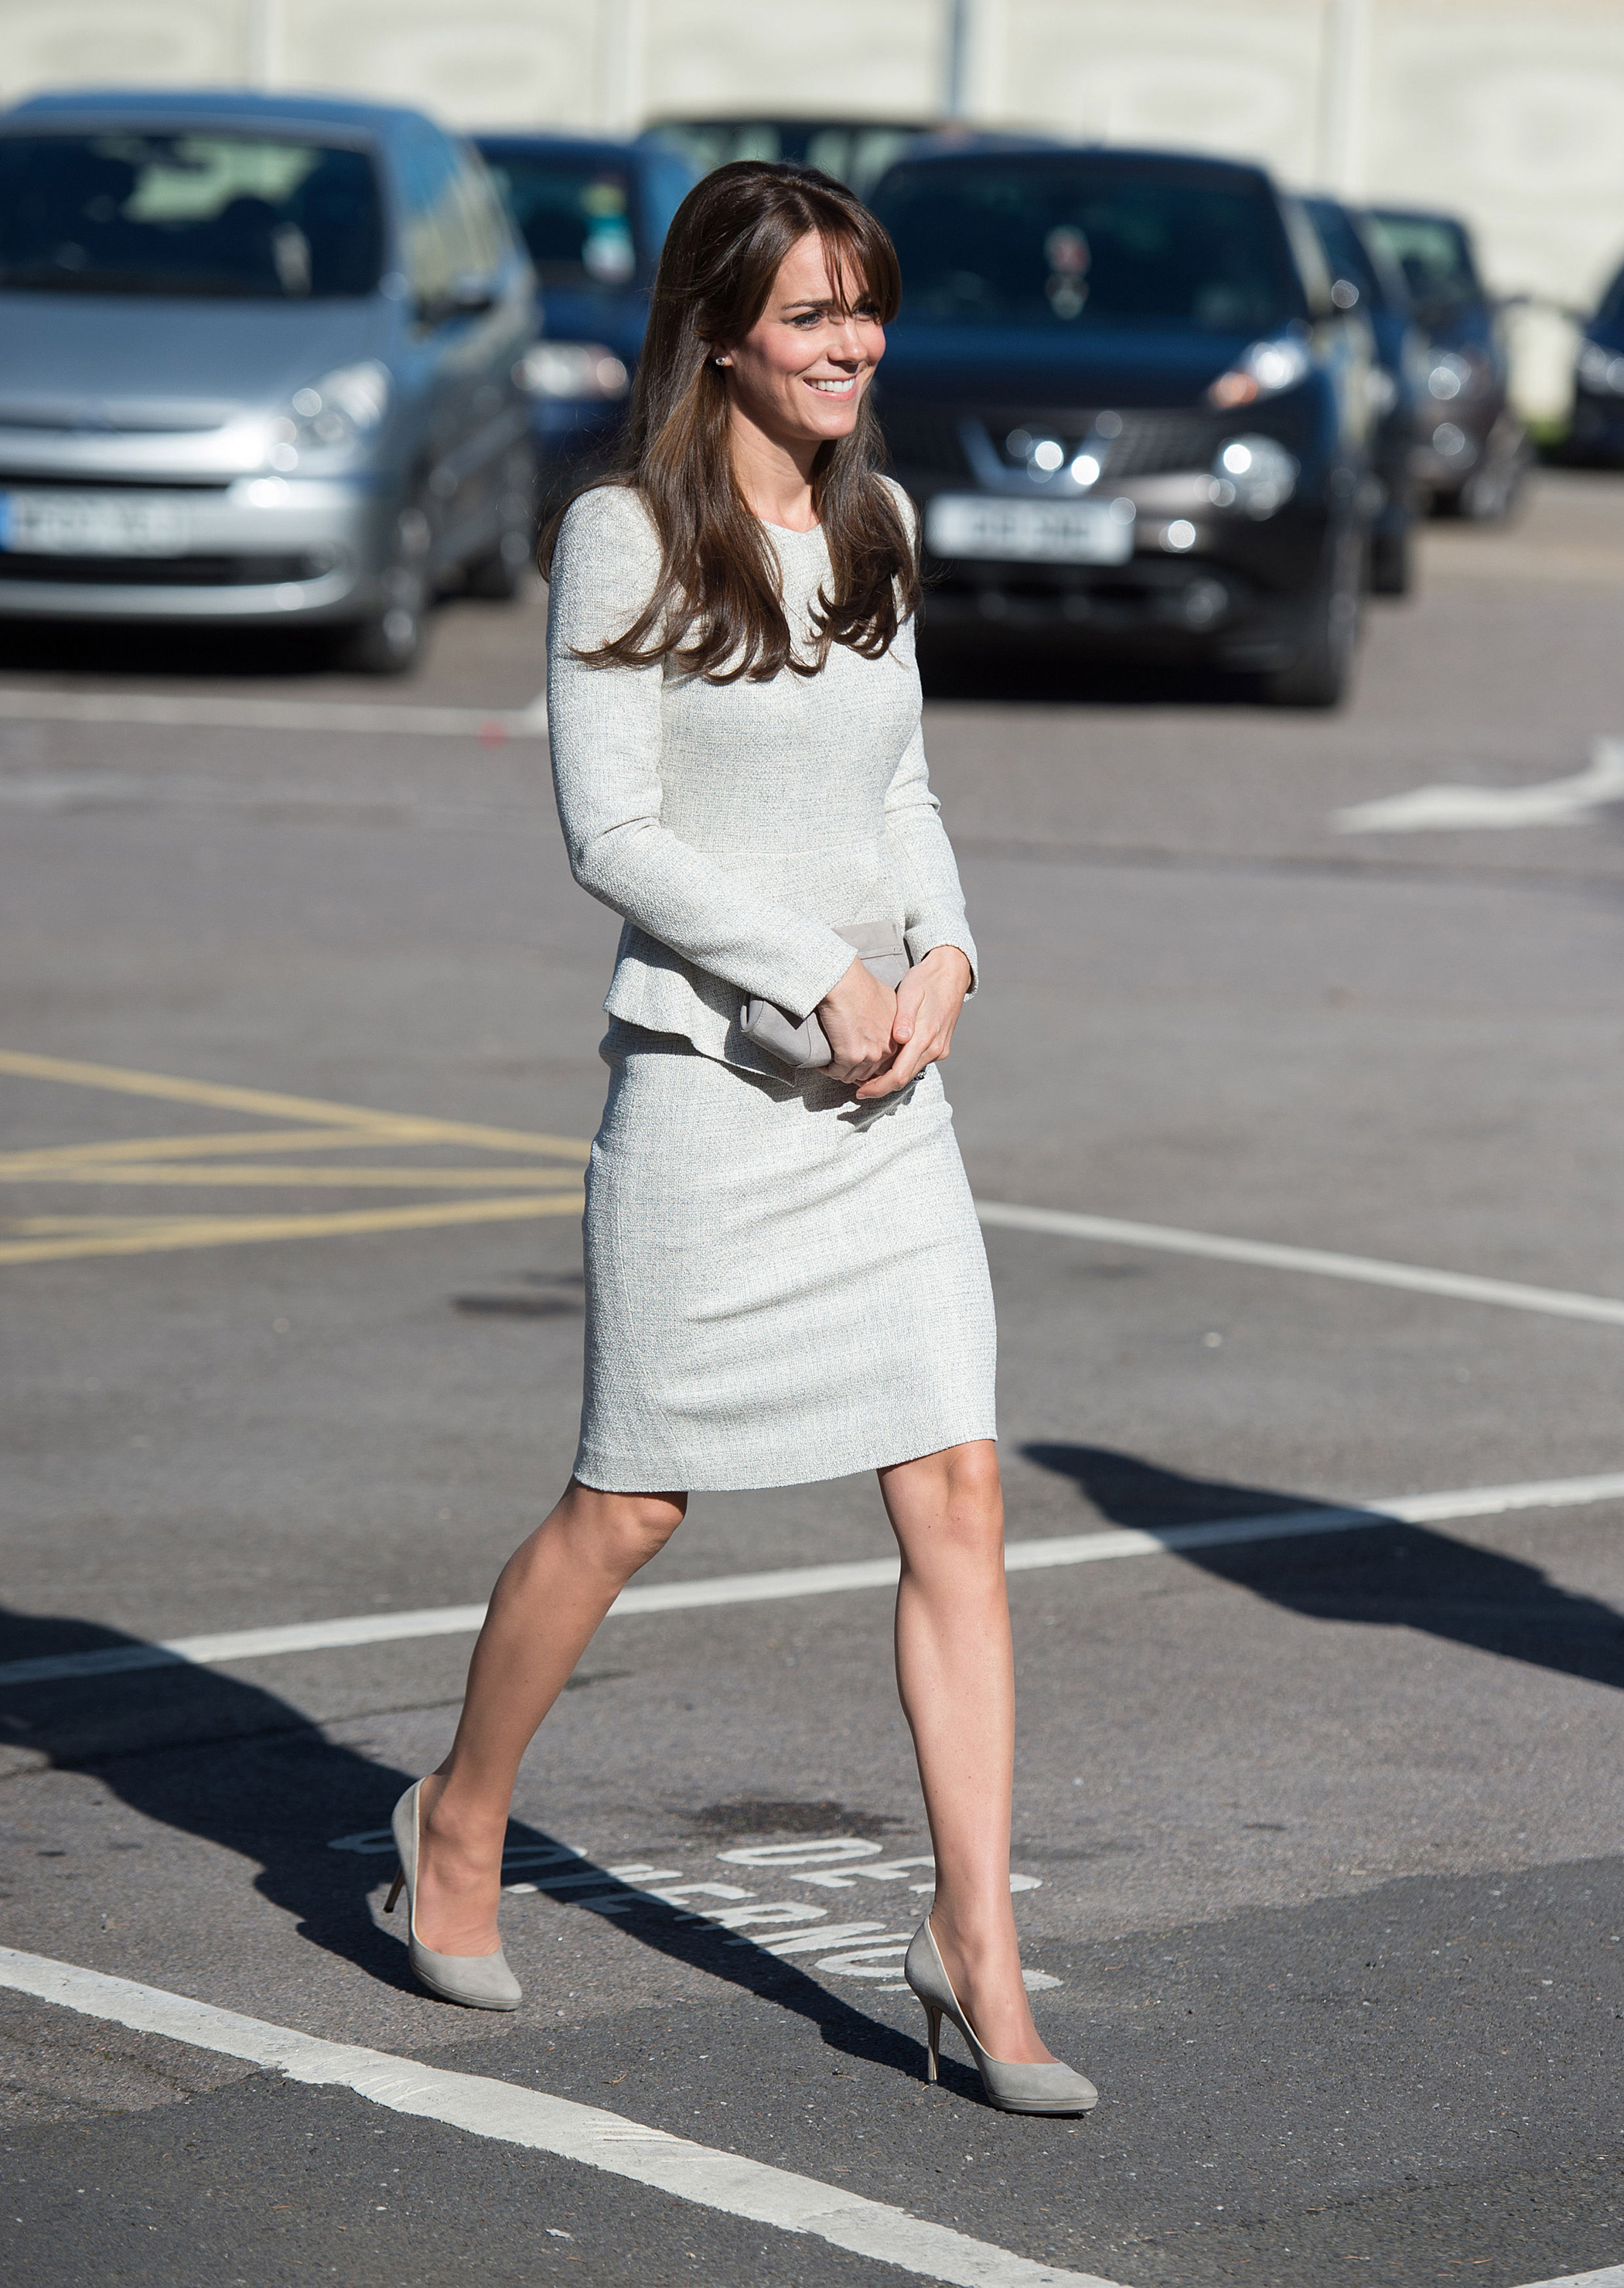 Catherine,  Duchess of Cambridge arrives for a visit to the Rehabilitation of Addicted Prisoners Trust at HMP Send on Sept. 25, 2015 in Woking, United Kingdom.